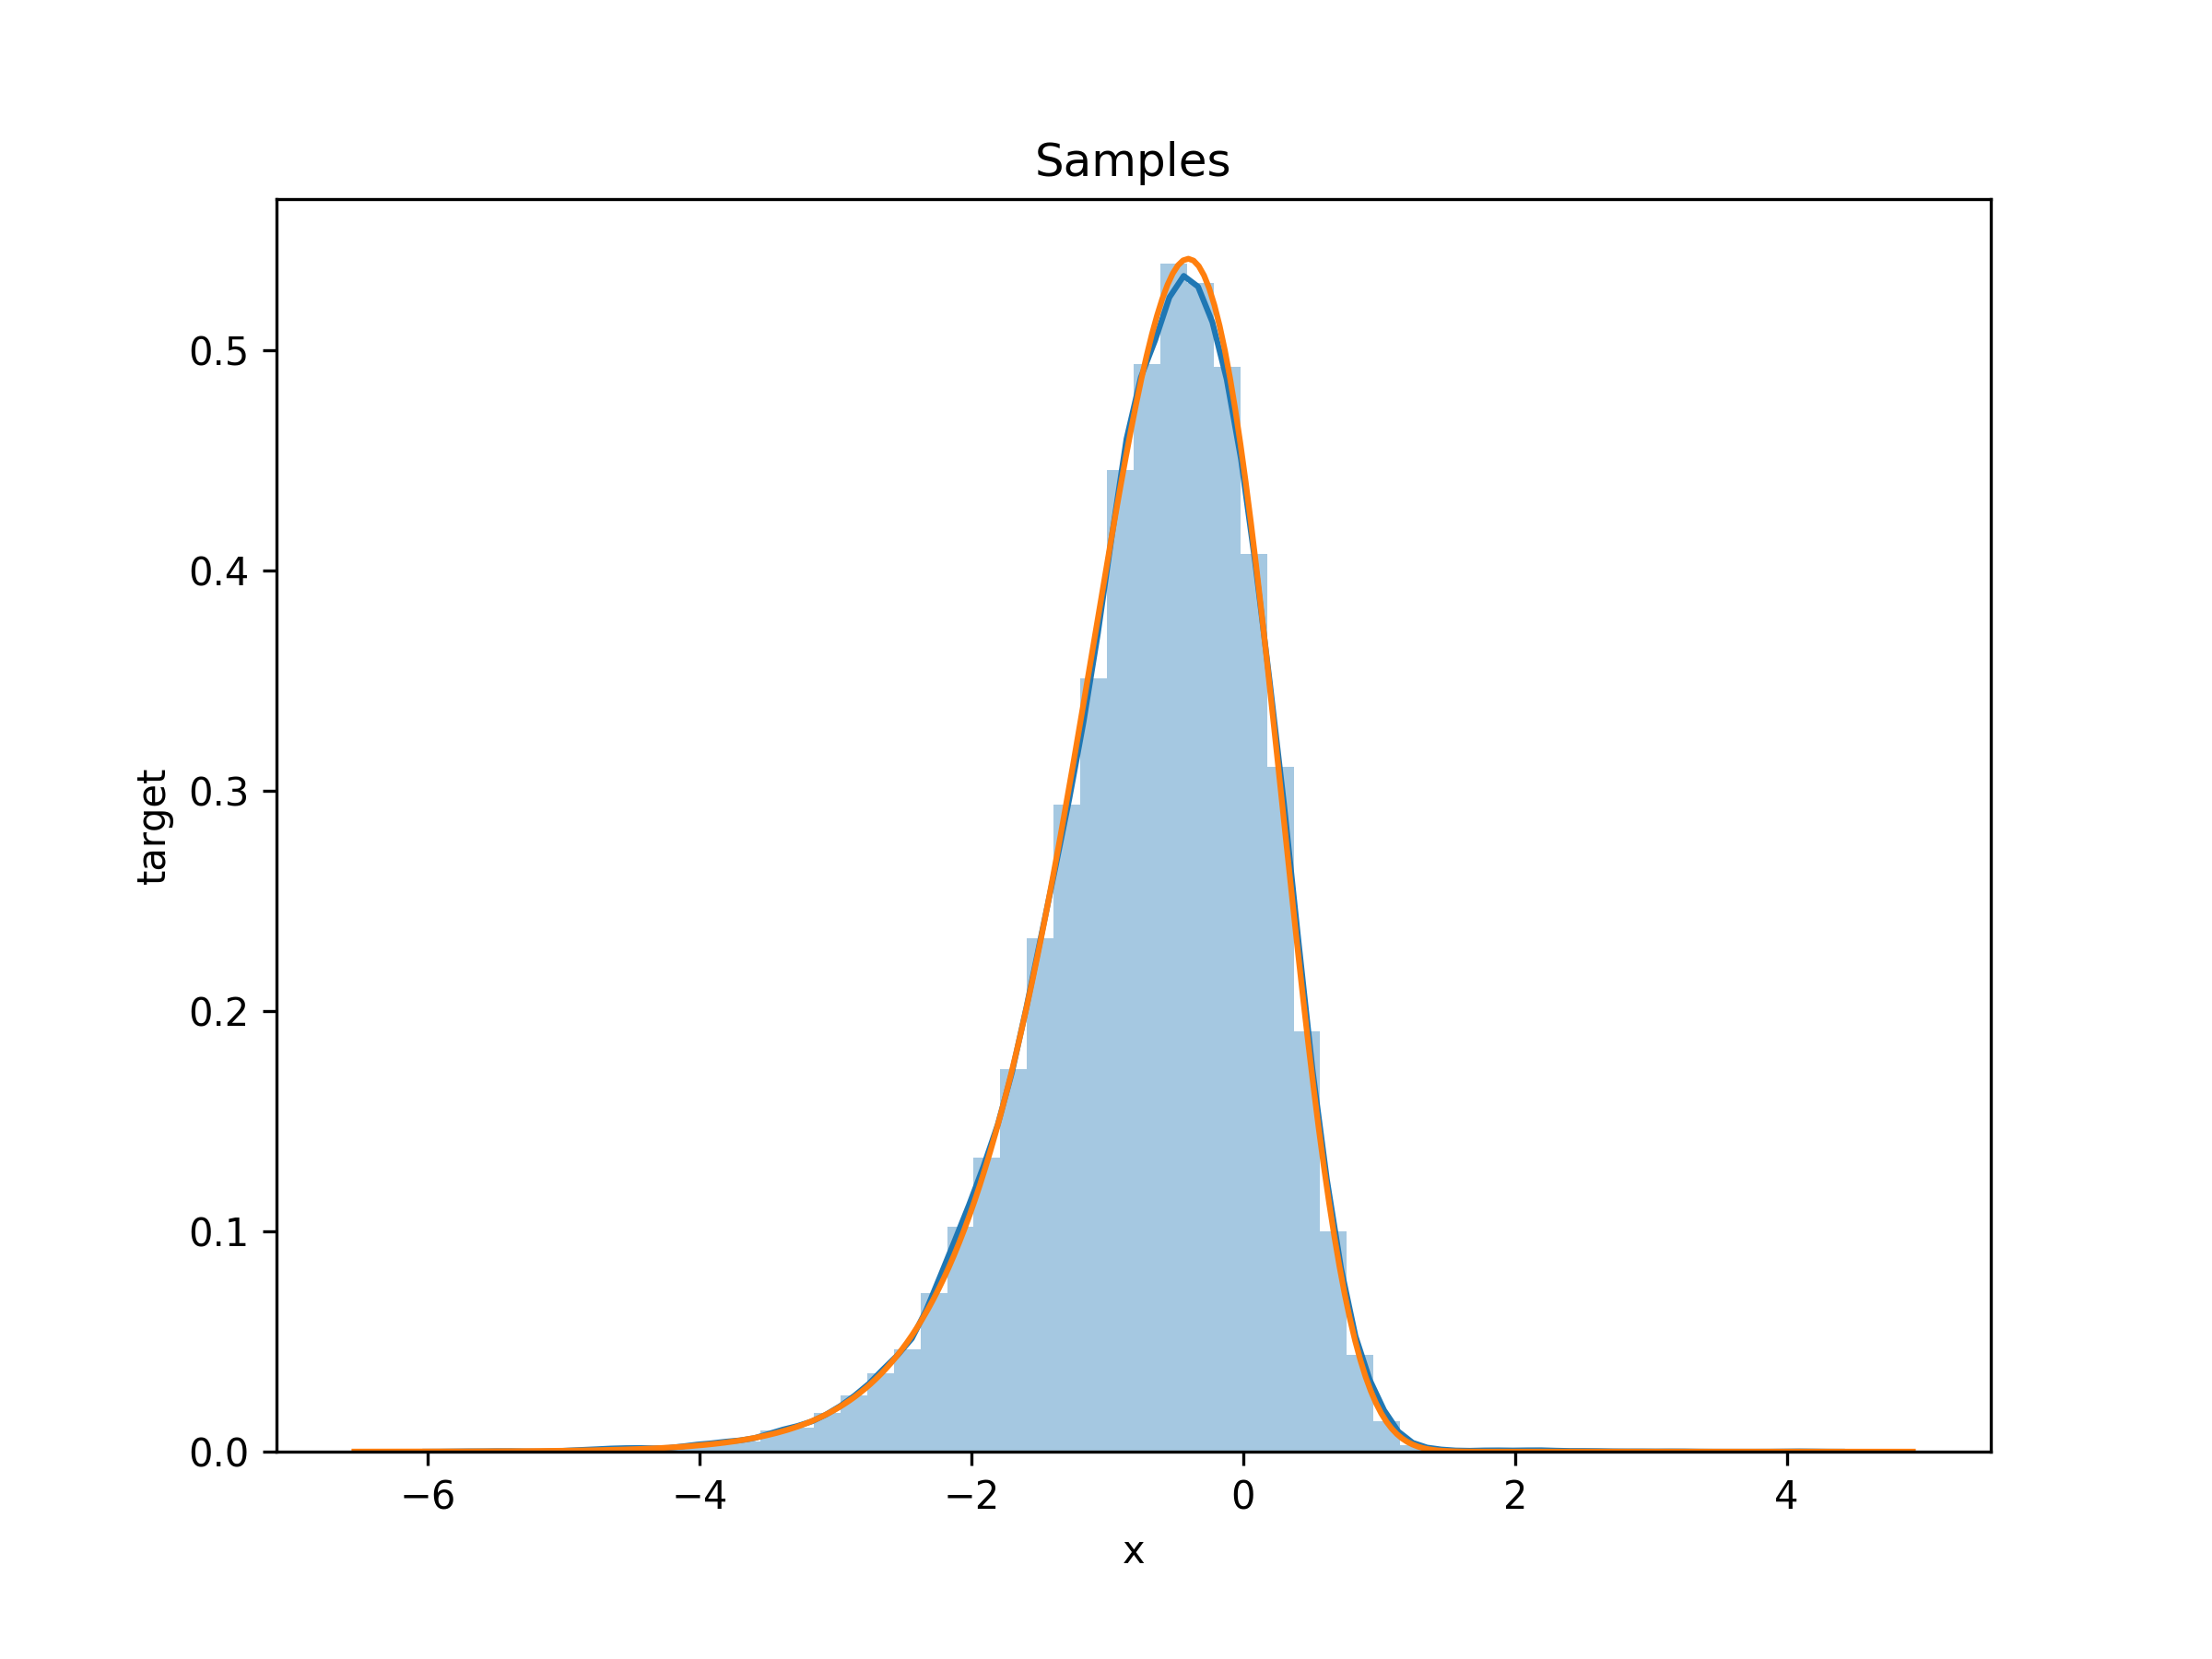 HAIS samples from log-gamma distribution